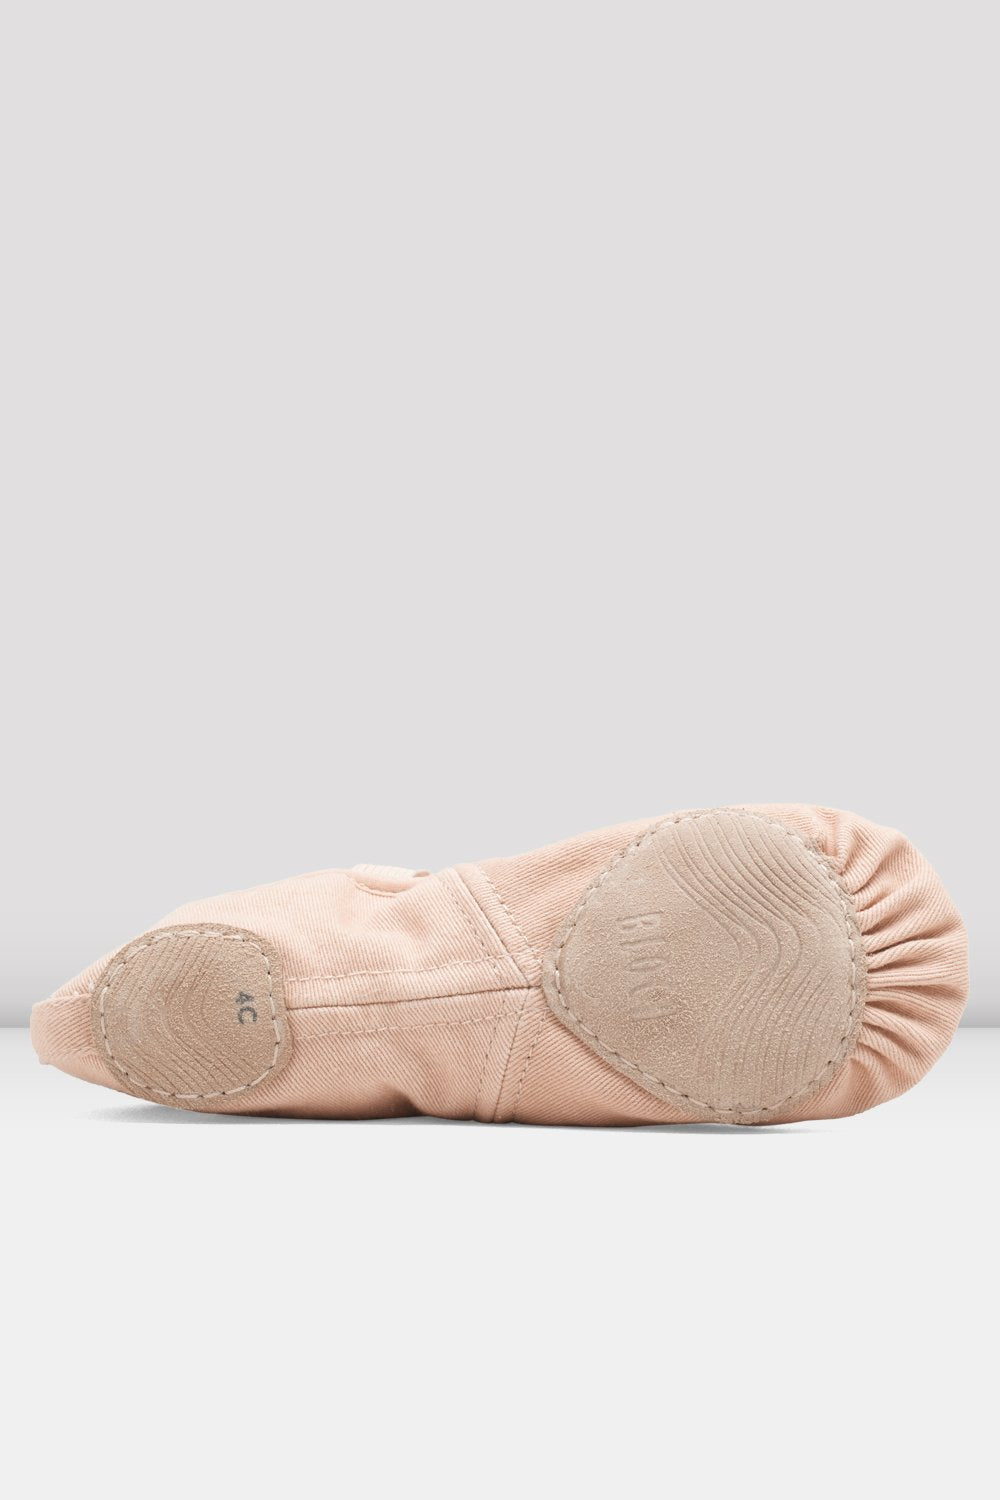 Pink canvas Bloch Ladies Infinity Stretch Canvas Ballet Shoes single shoes focus on the sole of shoe